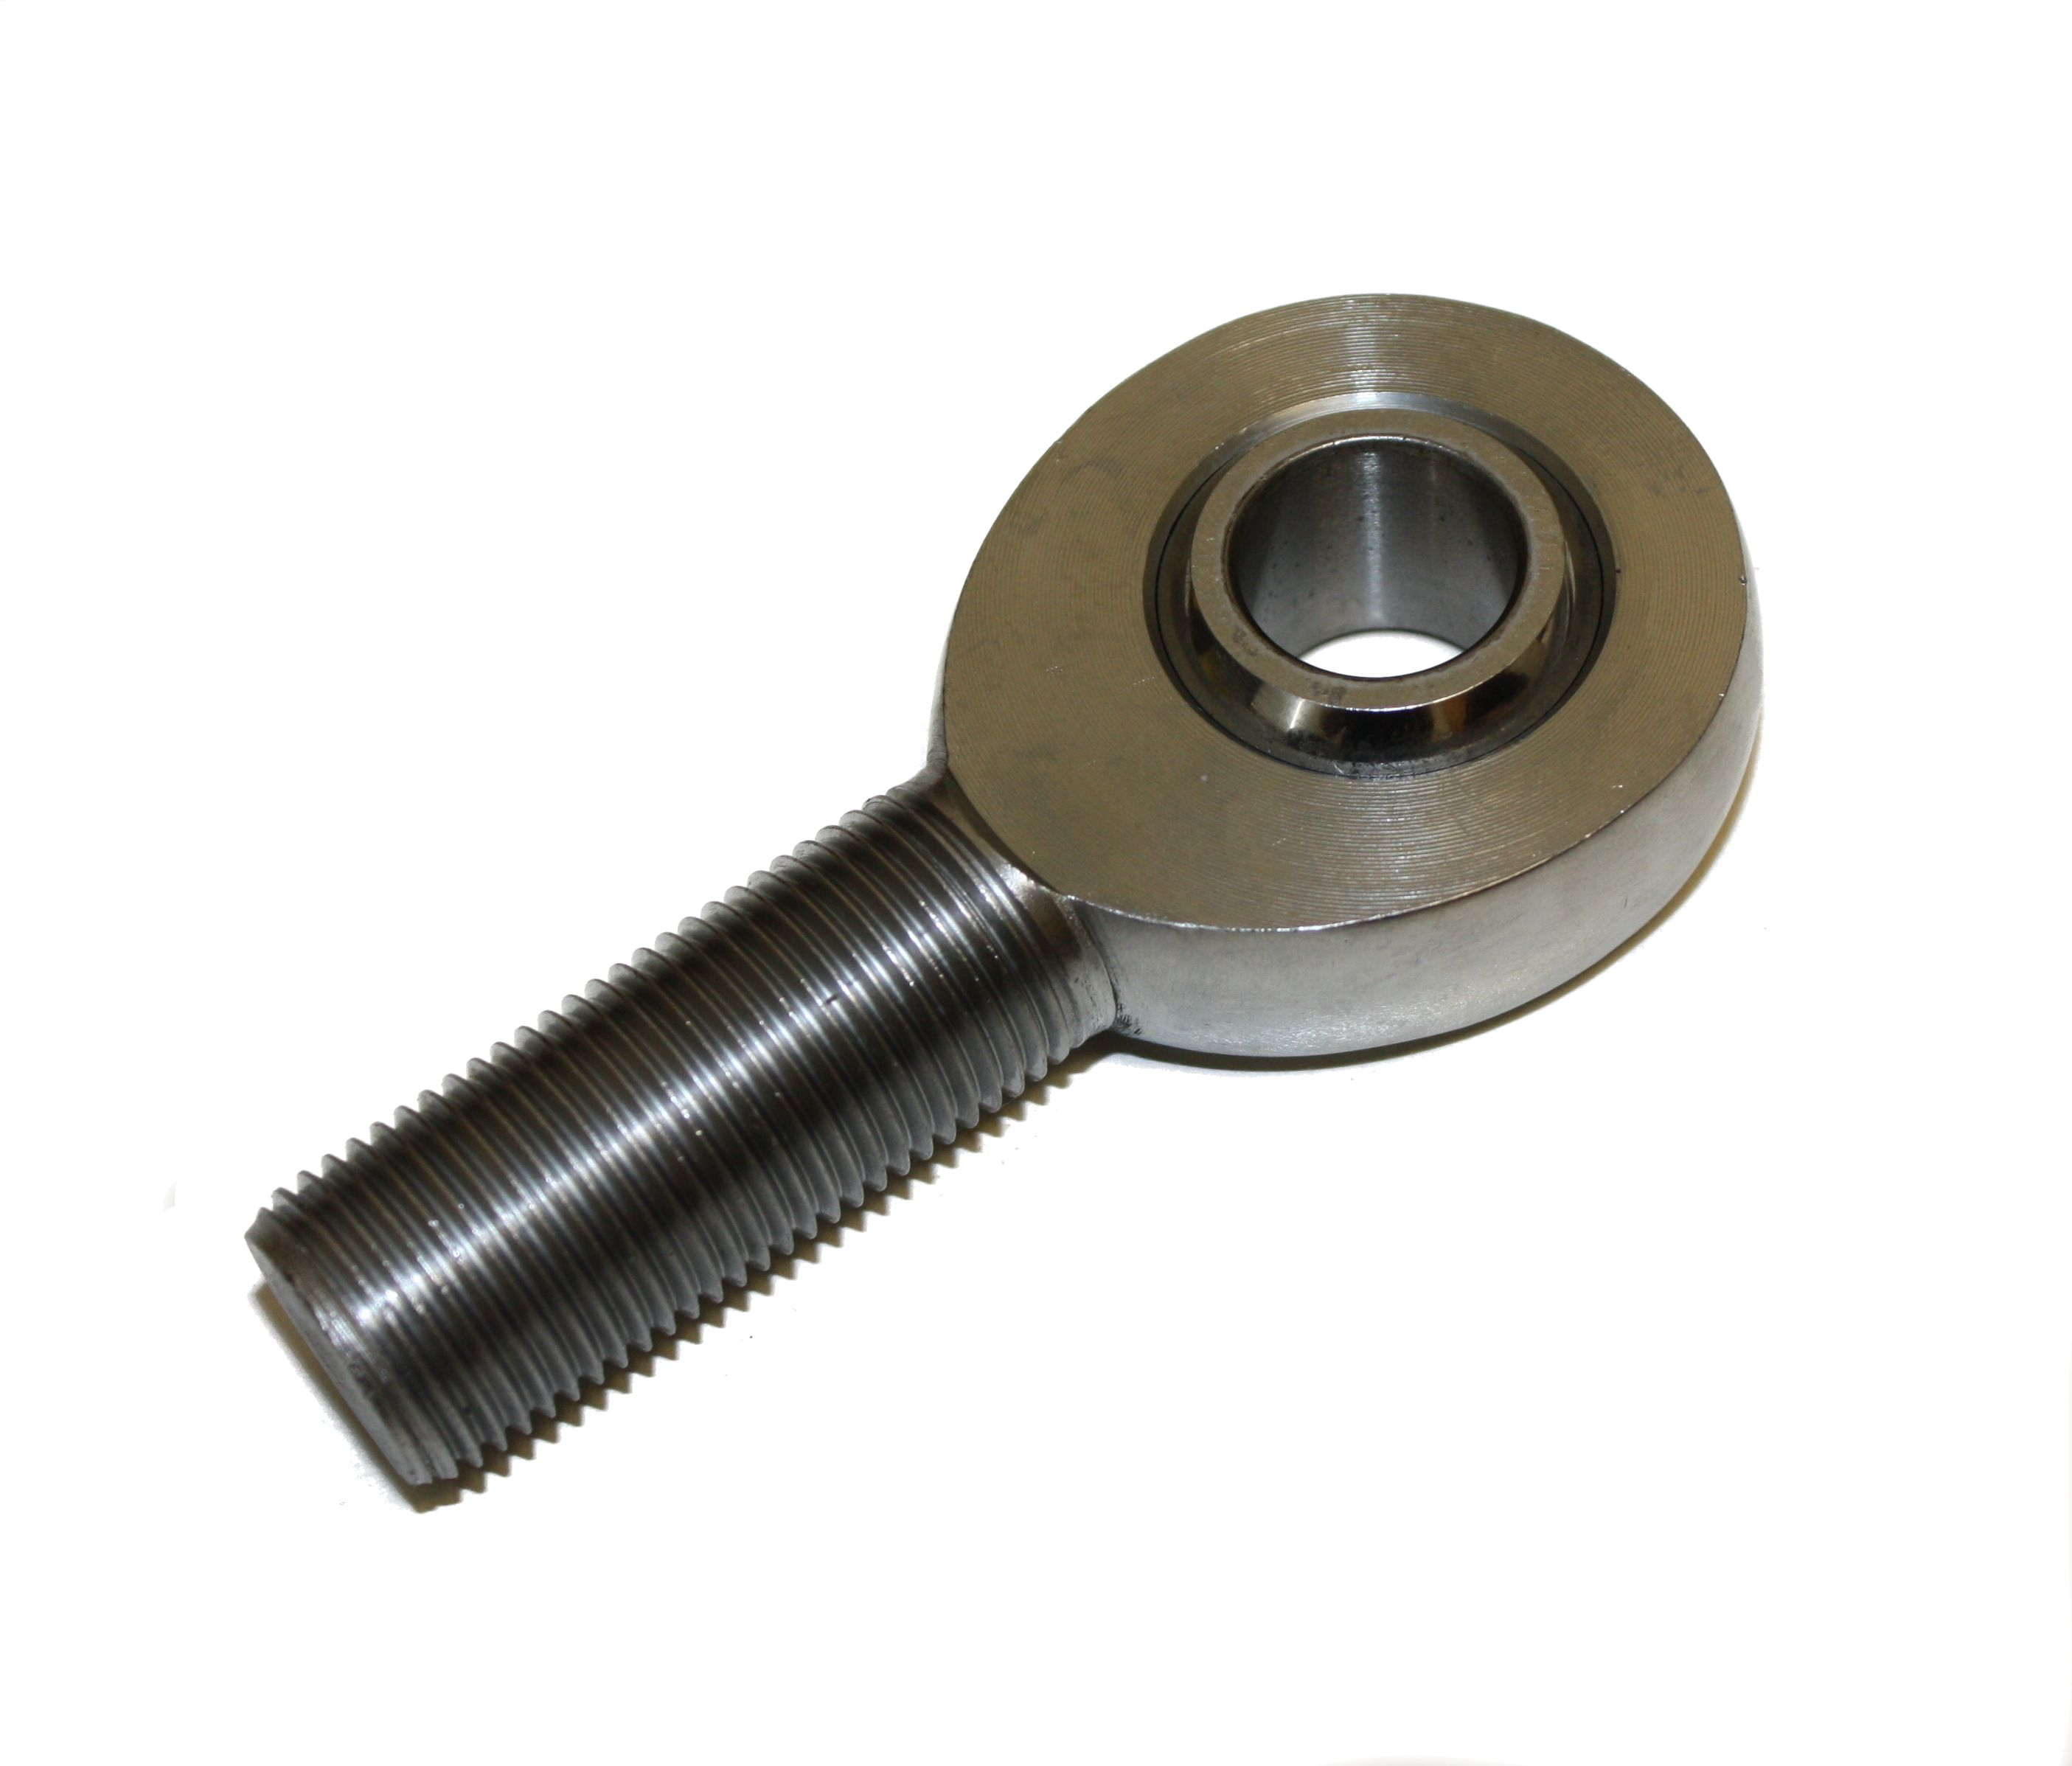 "Spherical Rod End; 3/4-16 Thread, 5/8"" Hole"